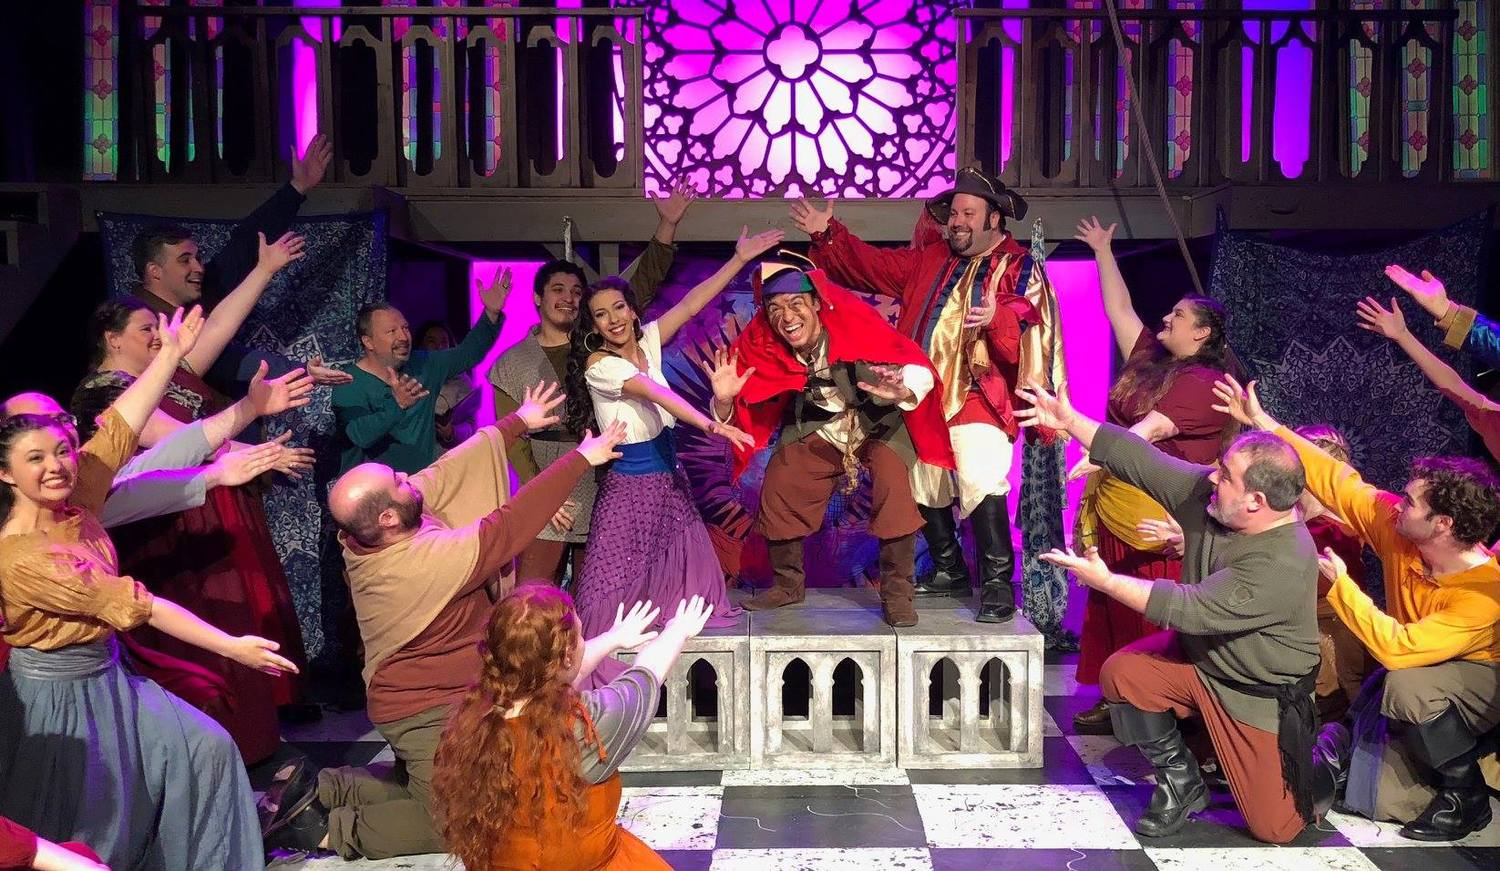 BWW Review: THE HUNCHBACK OF NOTRE DAME at Cultural Arts Playhouse